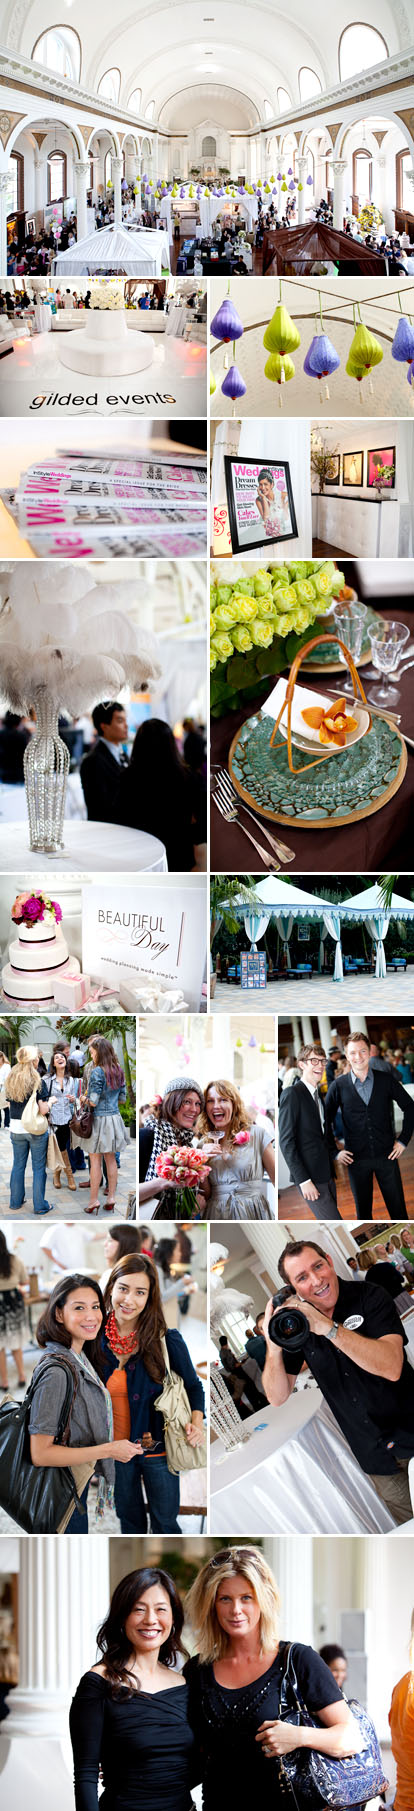 A Soolip Wedding, Los Angeles wedding show, images by Junebug Weddings